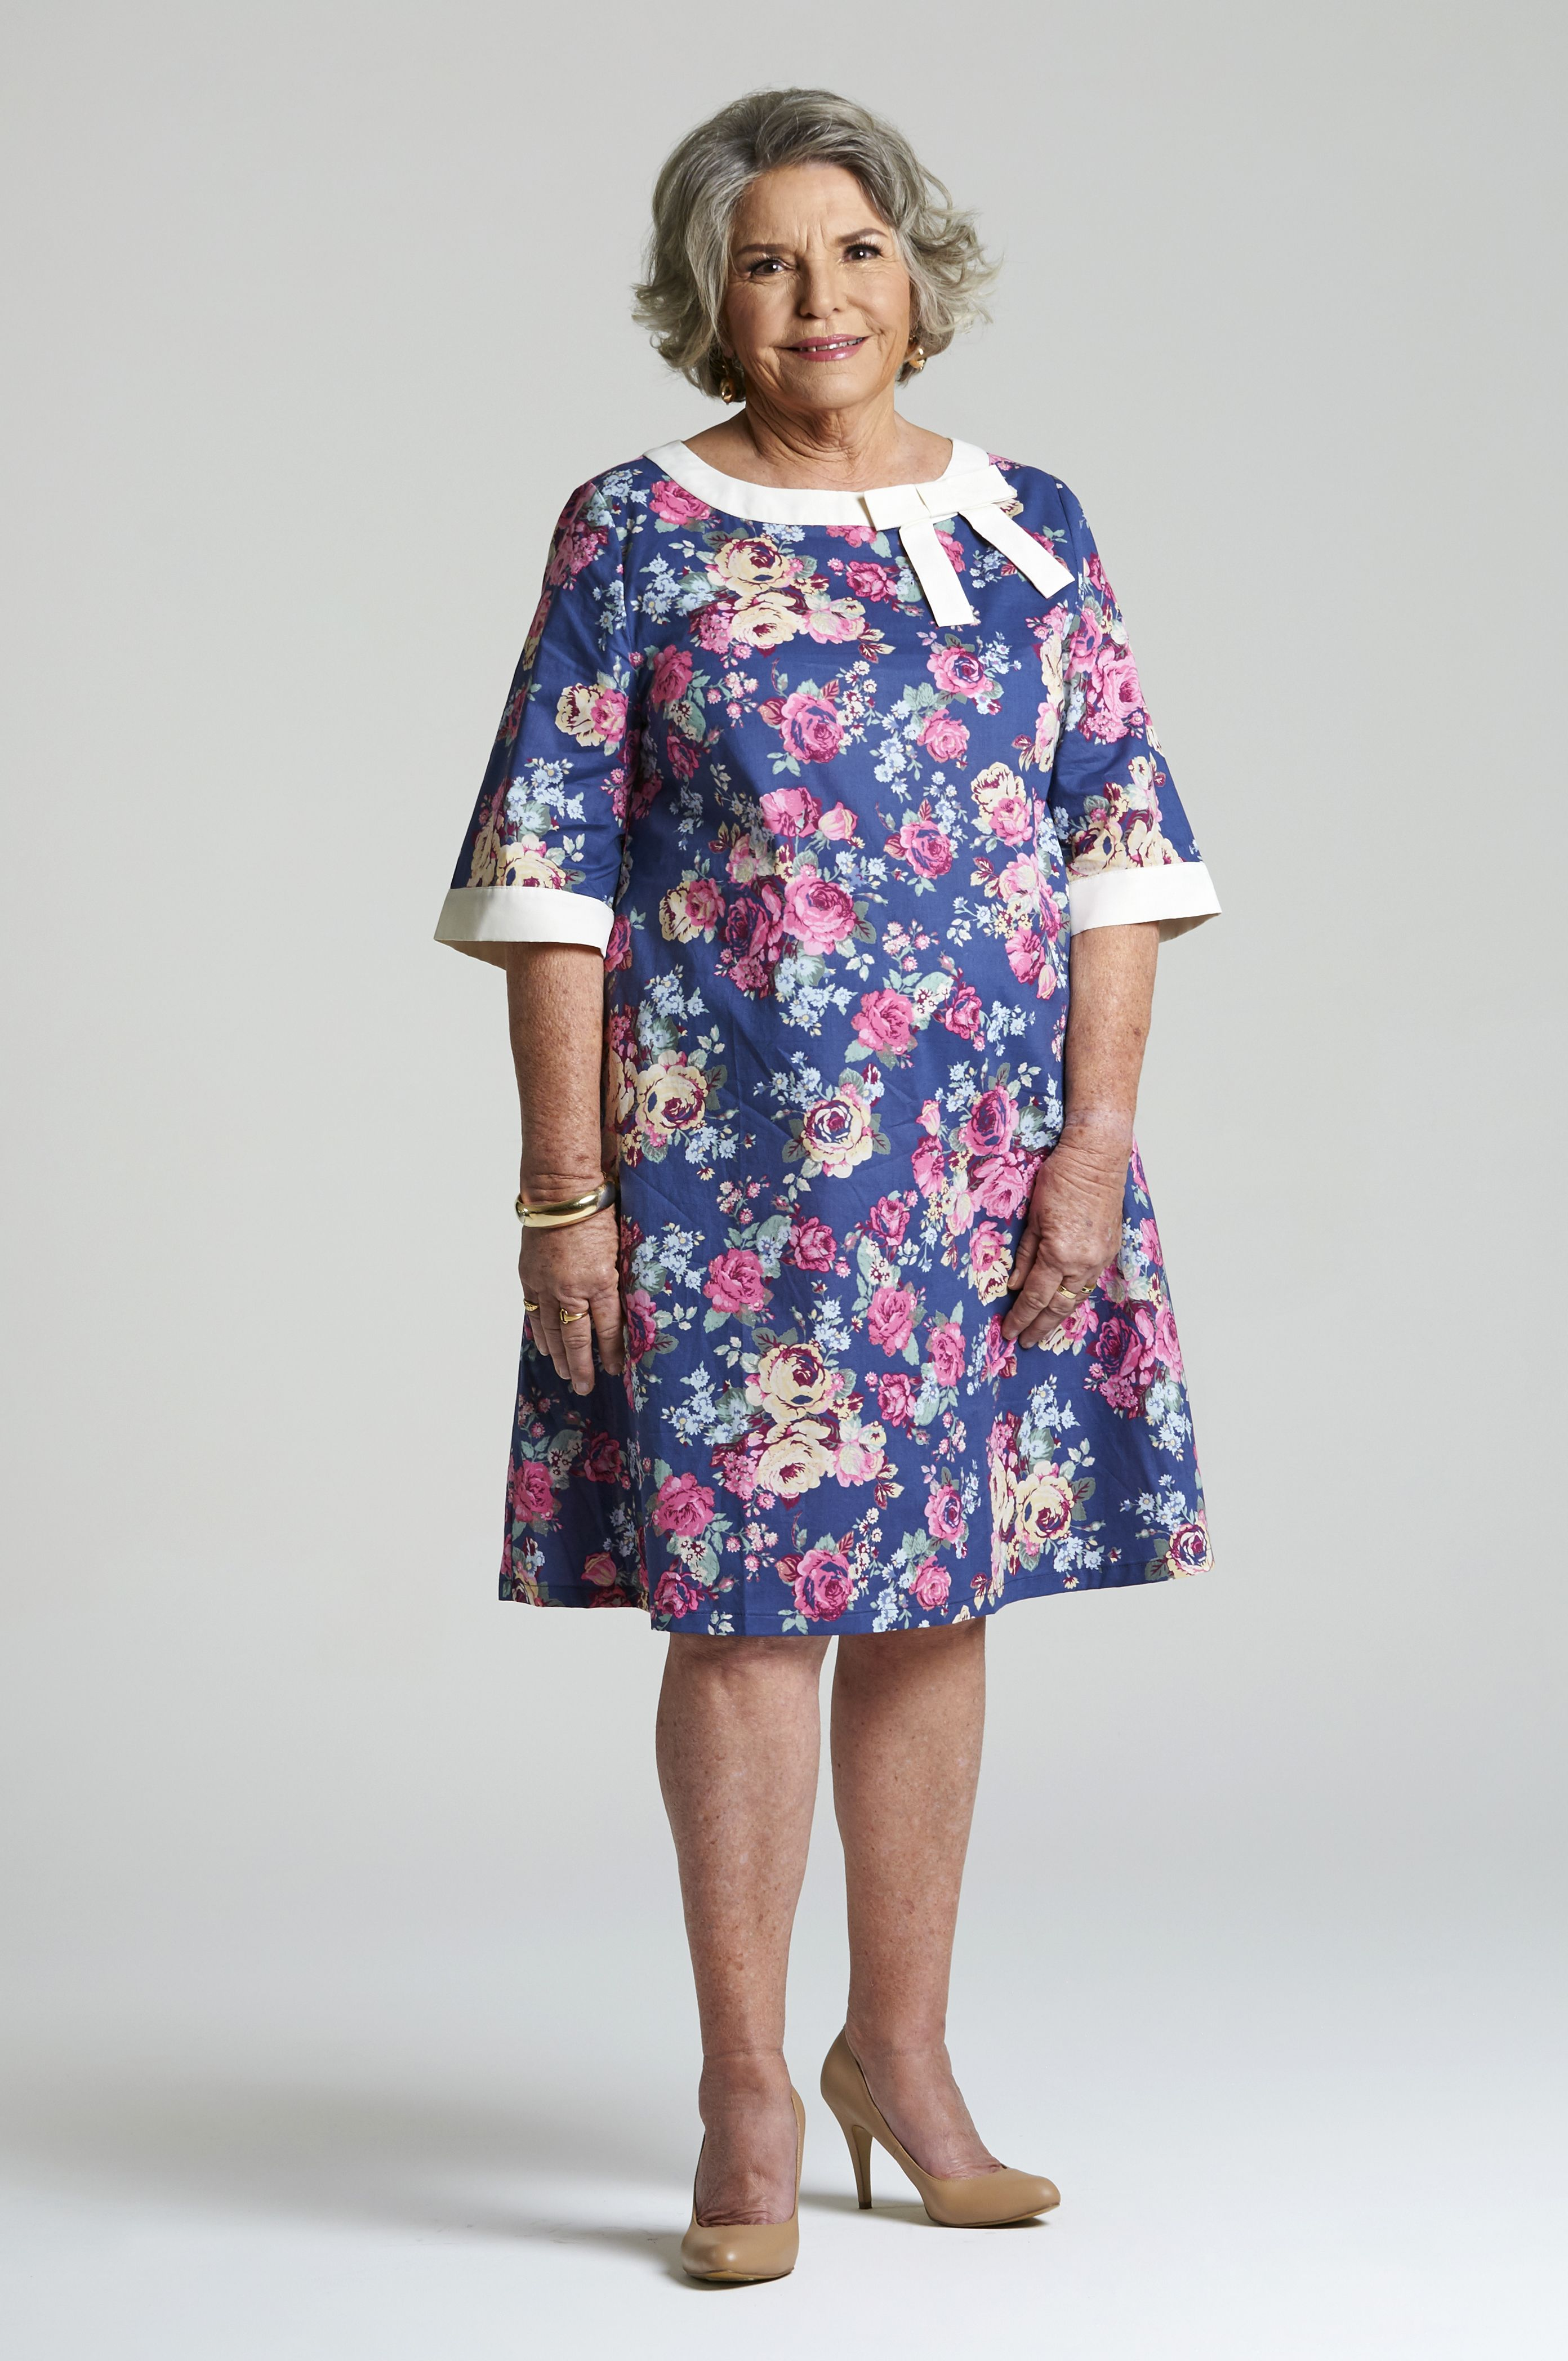 The Beautiful Alice Dress For Older Ladies So Easy To Put On With No Zips Or Buttons Elbow Length Sleeves And A Com Easy Clothing Summer Day Dresses Dresses [ 4192 x 2784 Pixel ]